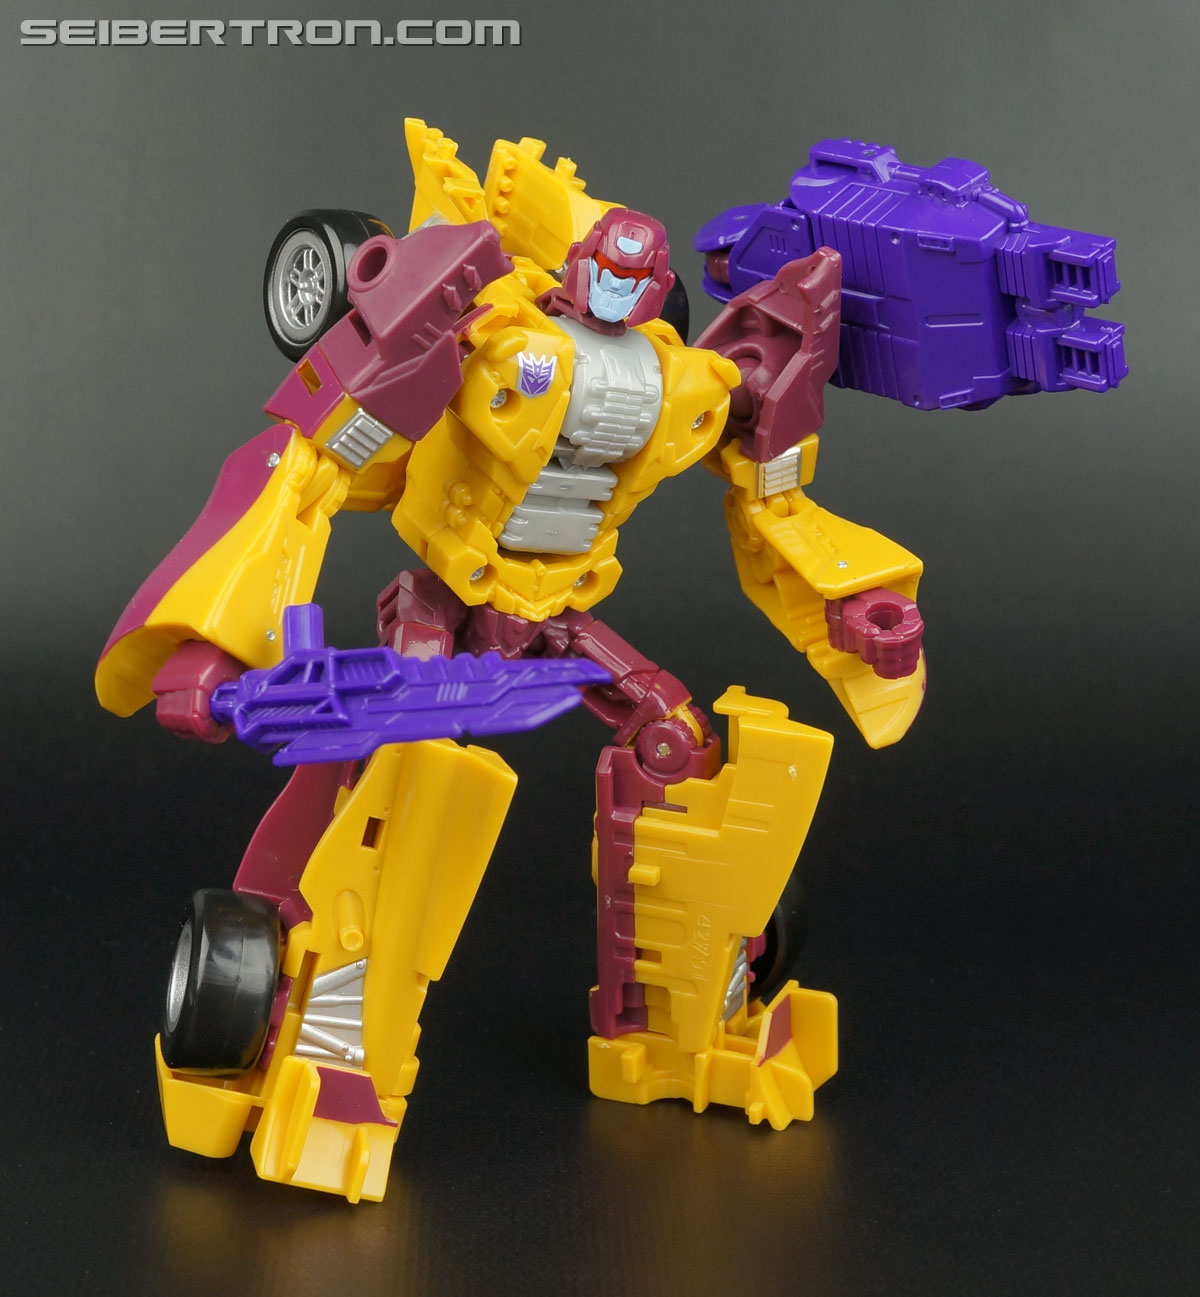 Transformers Generations Combiner Wars Dragstrip (Drag Strip) (Image #89 of 128)